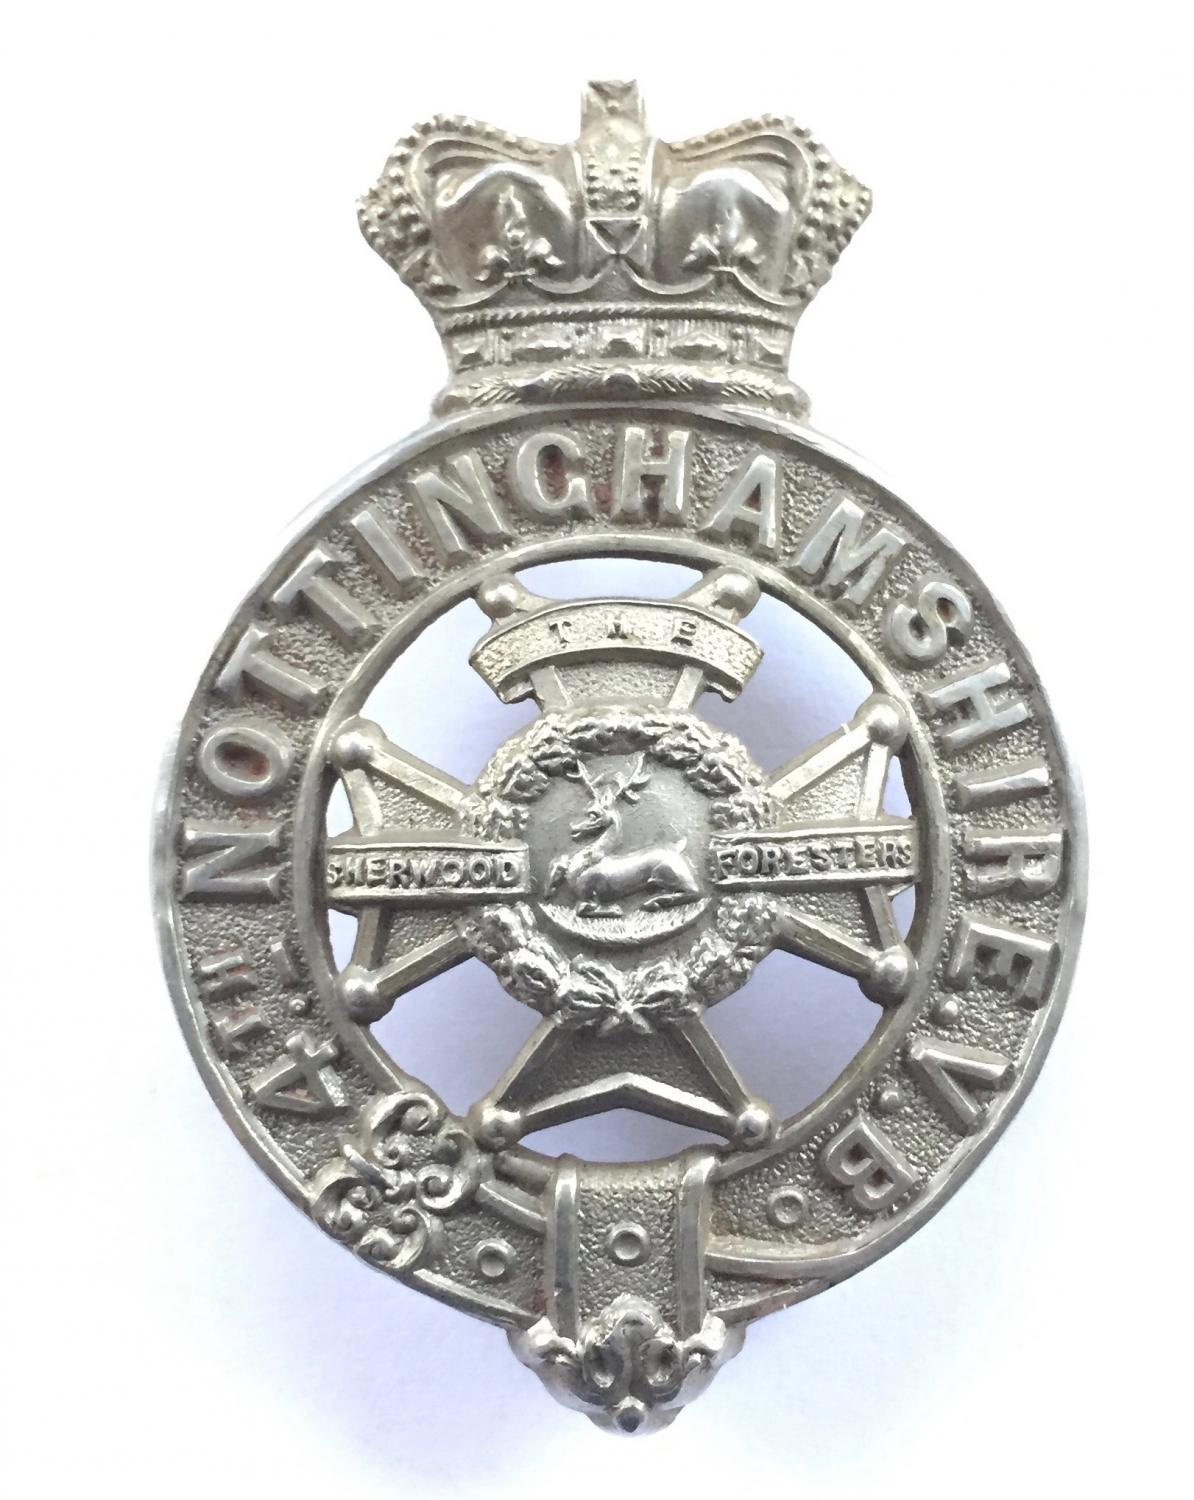 4th VB Notts Victorian glengarry badge